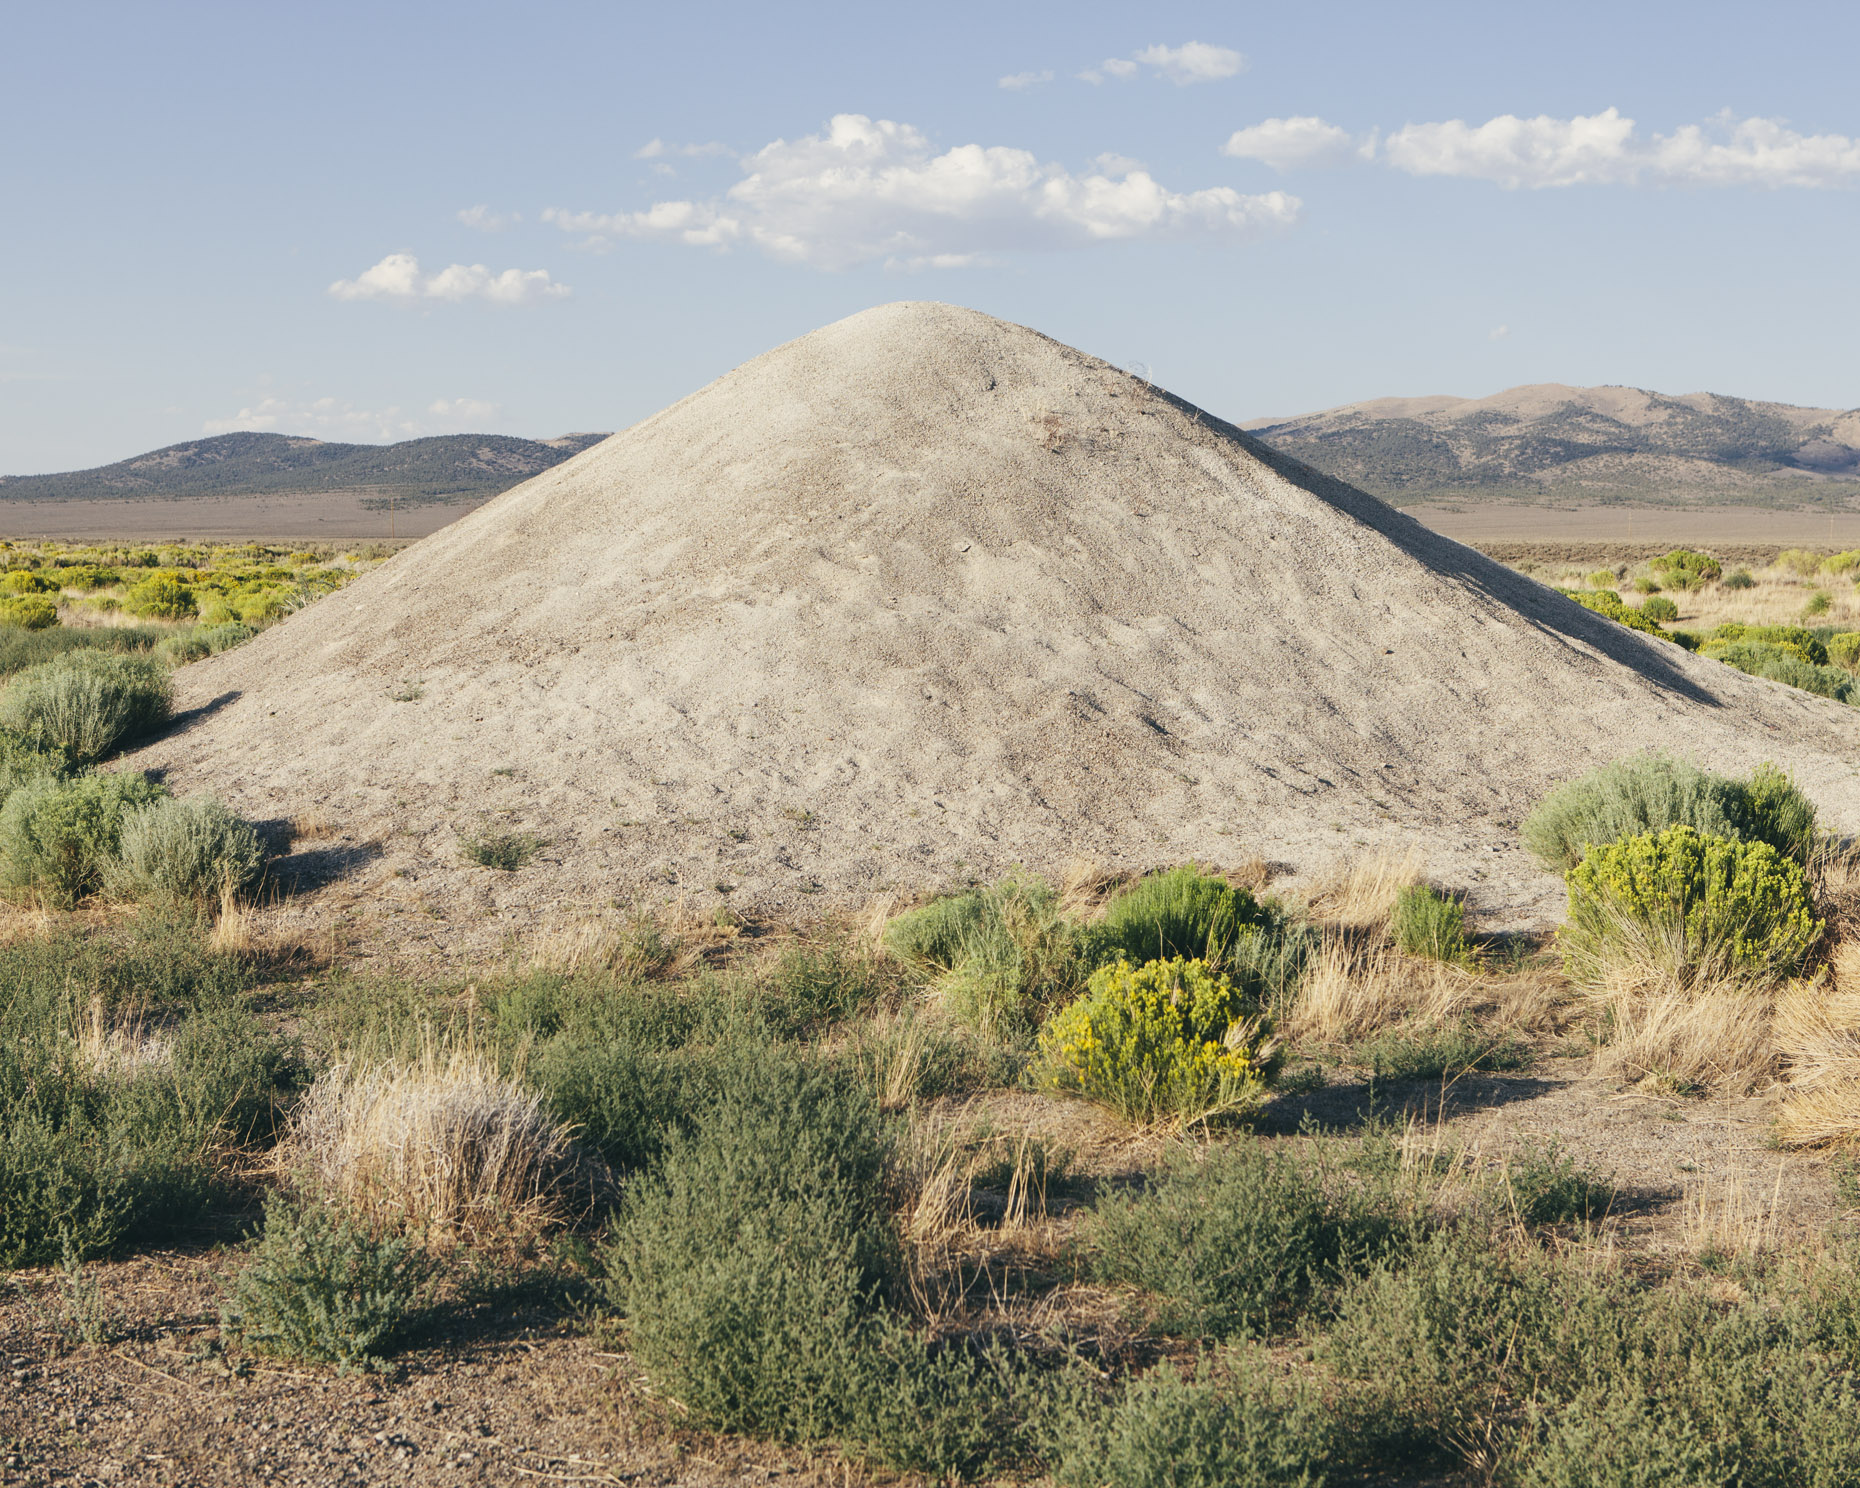 Gravel pile, Wendover, Utah - Paul Edmondson